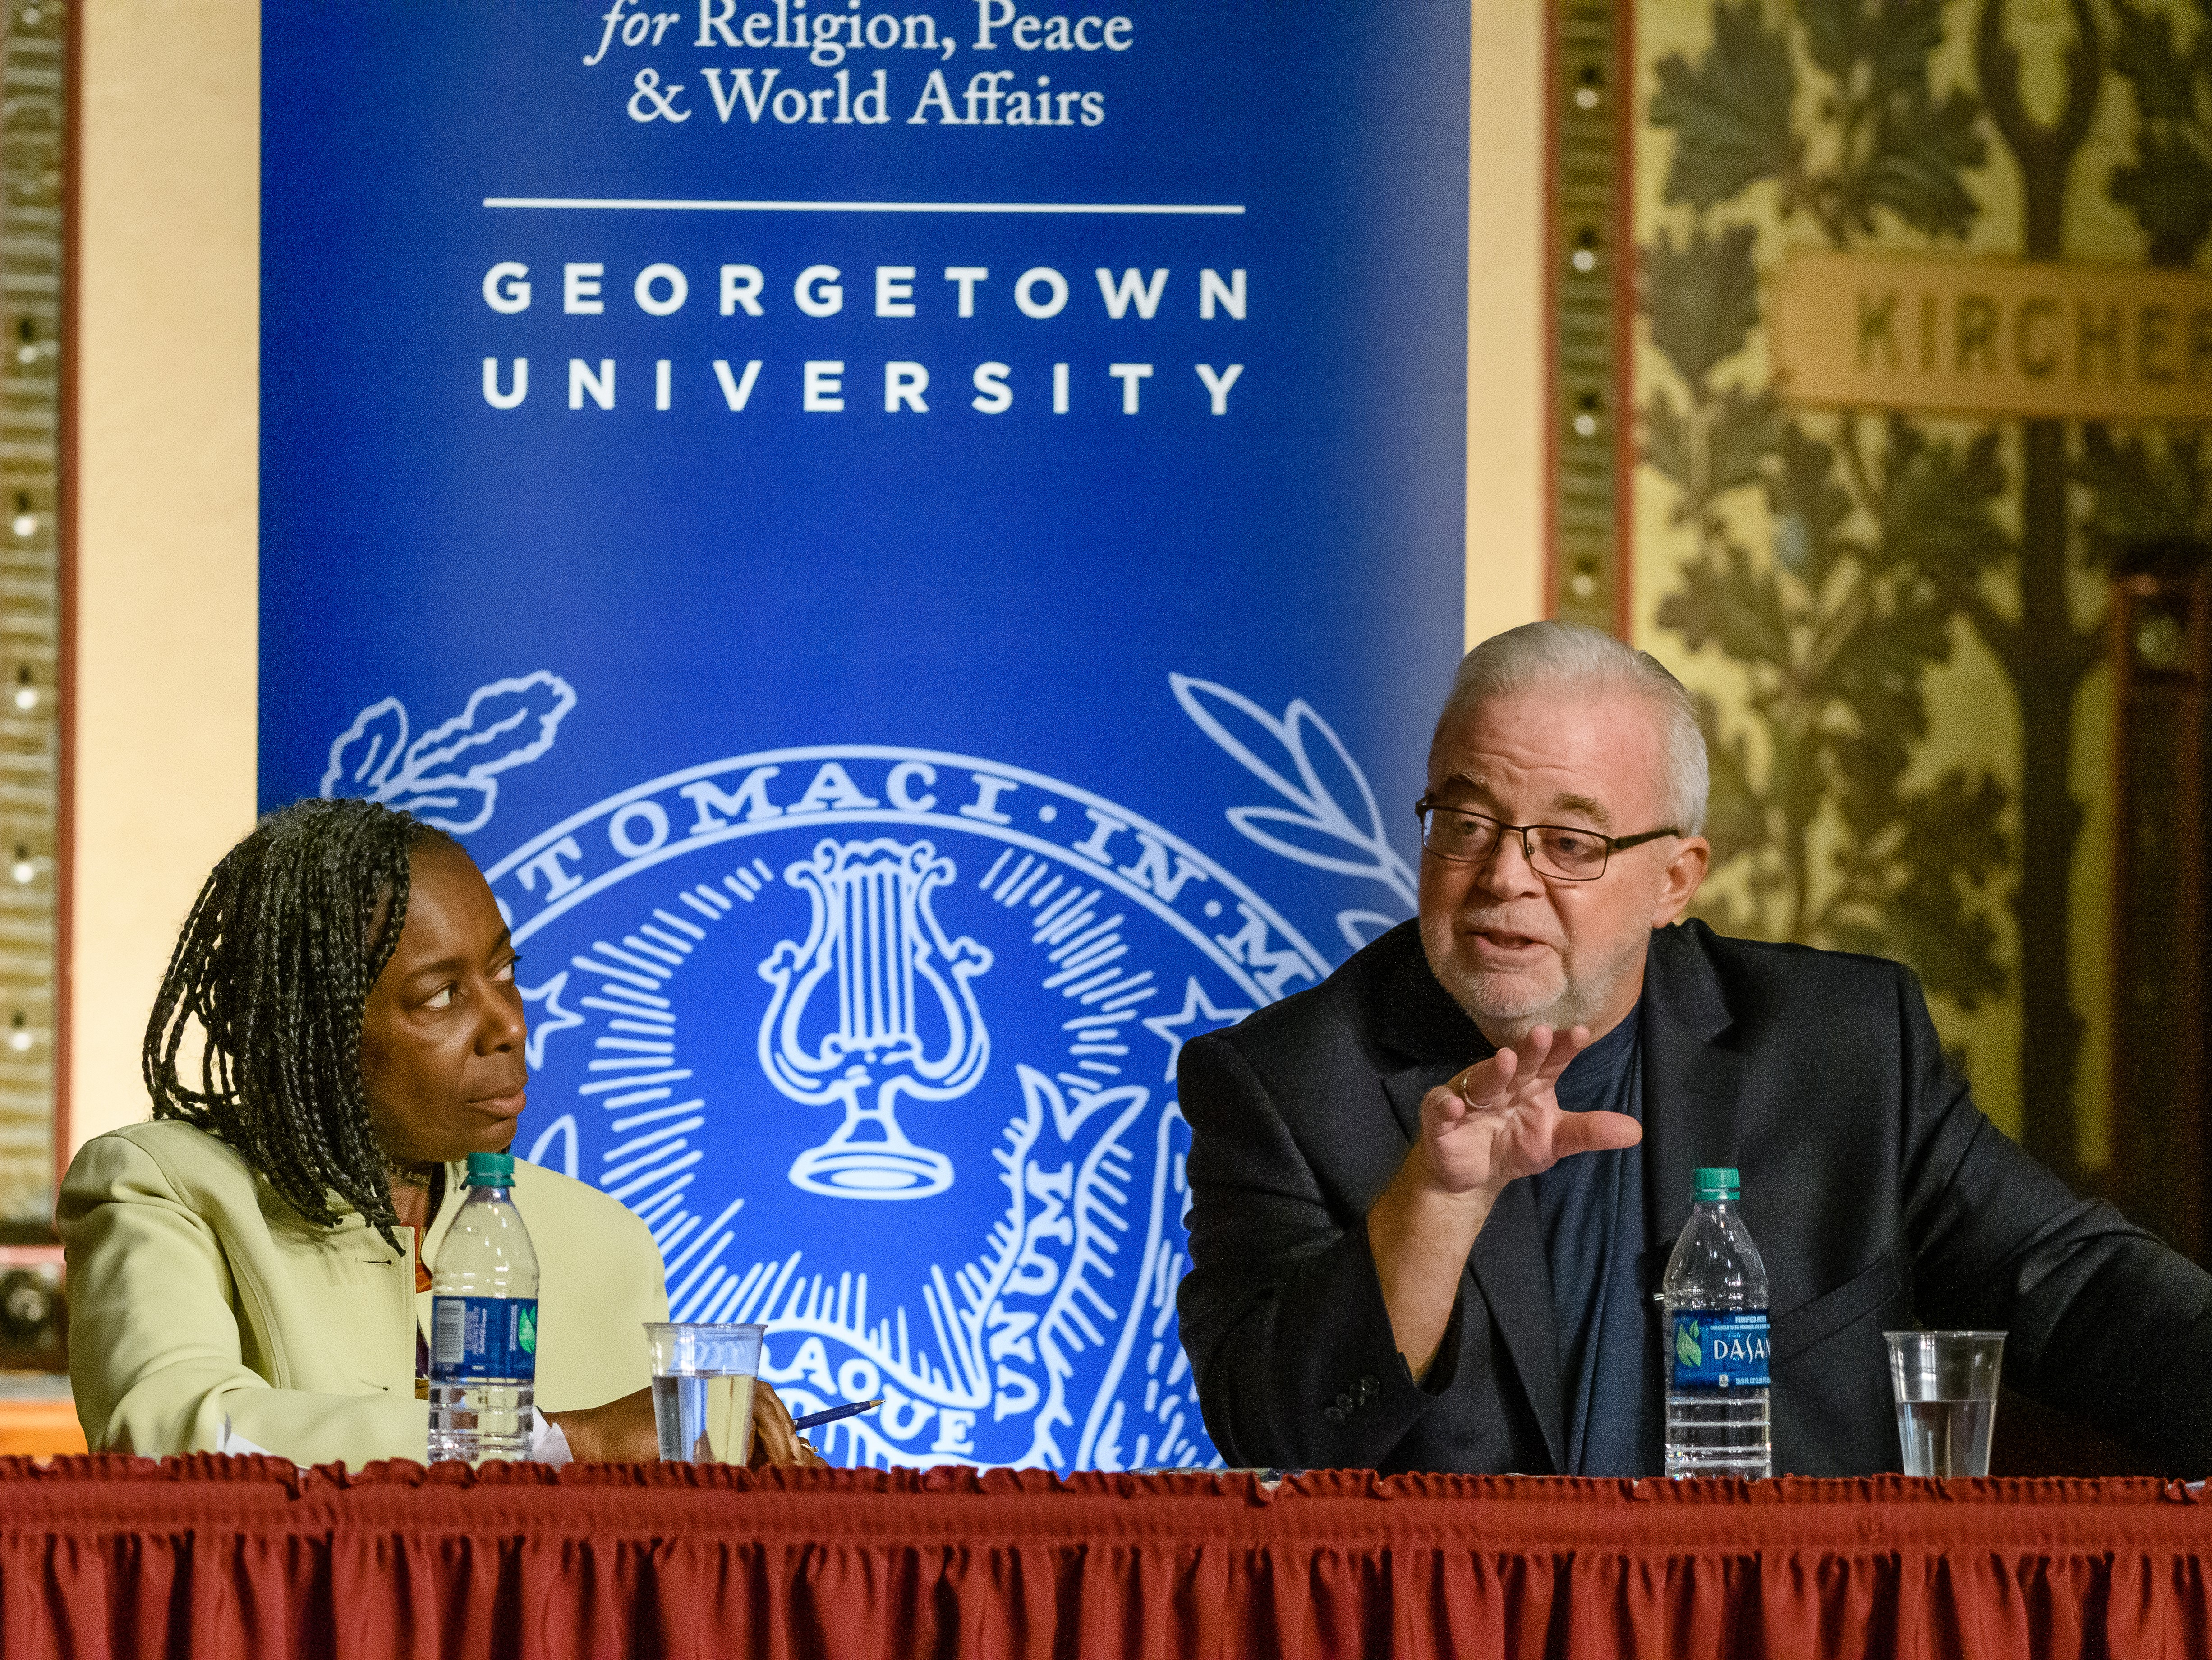 Panelist Jim Wallis offers insights on how to use faith as a means of unity, rather than division, when discussing race and politics.